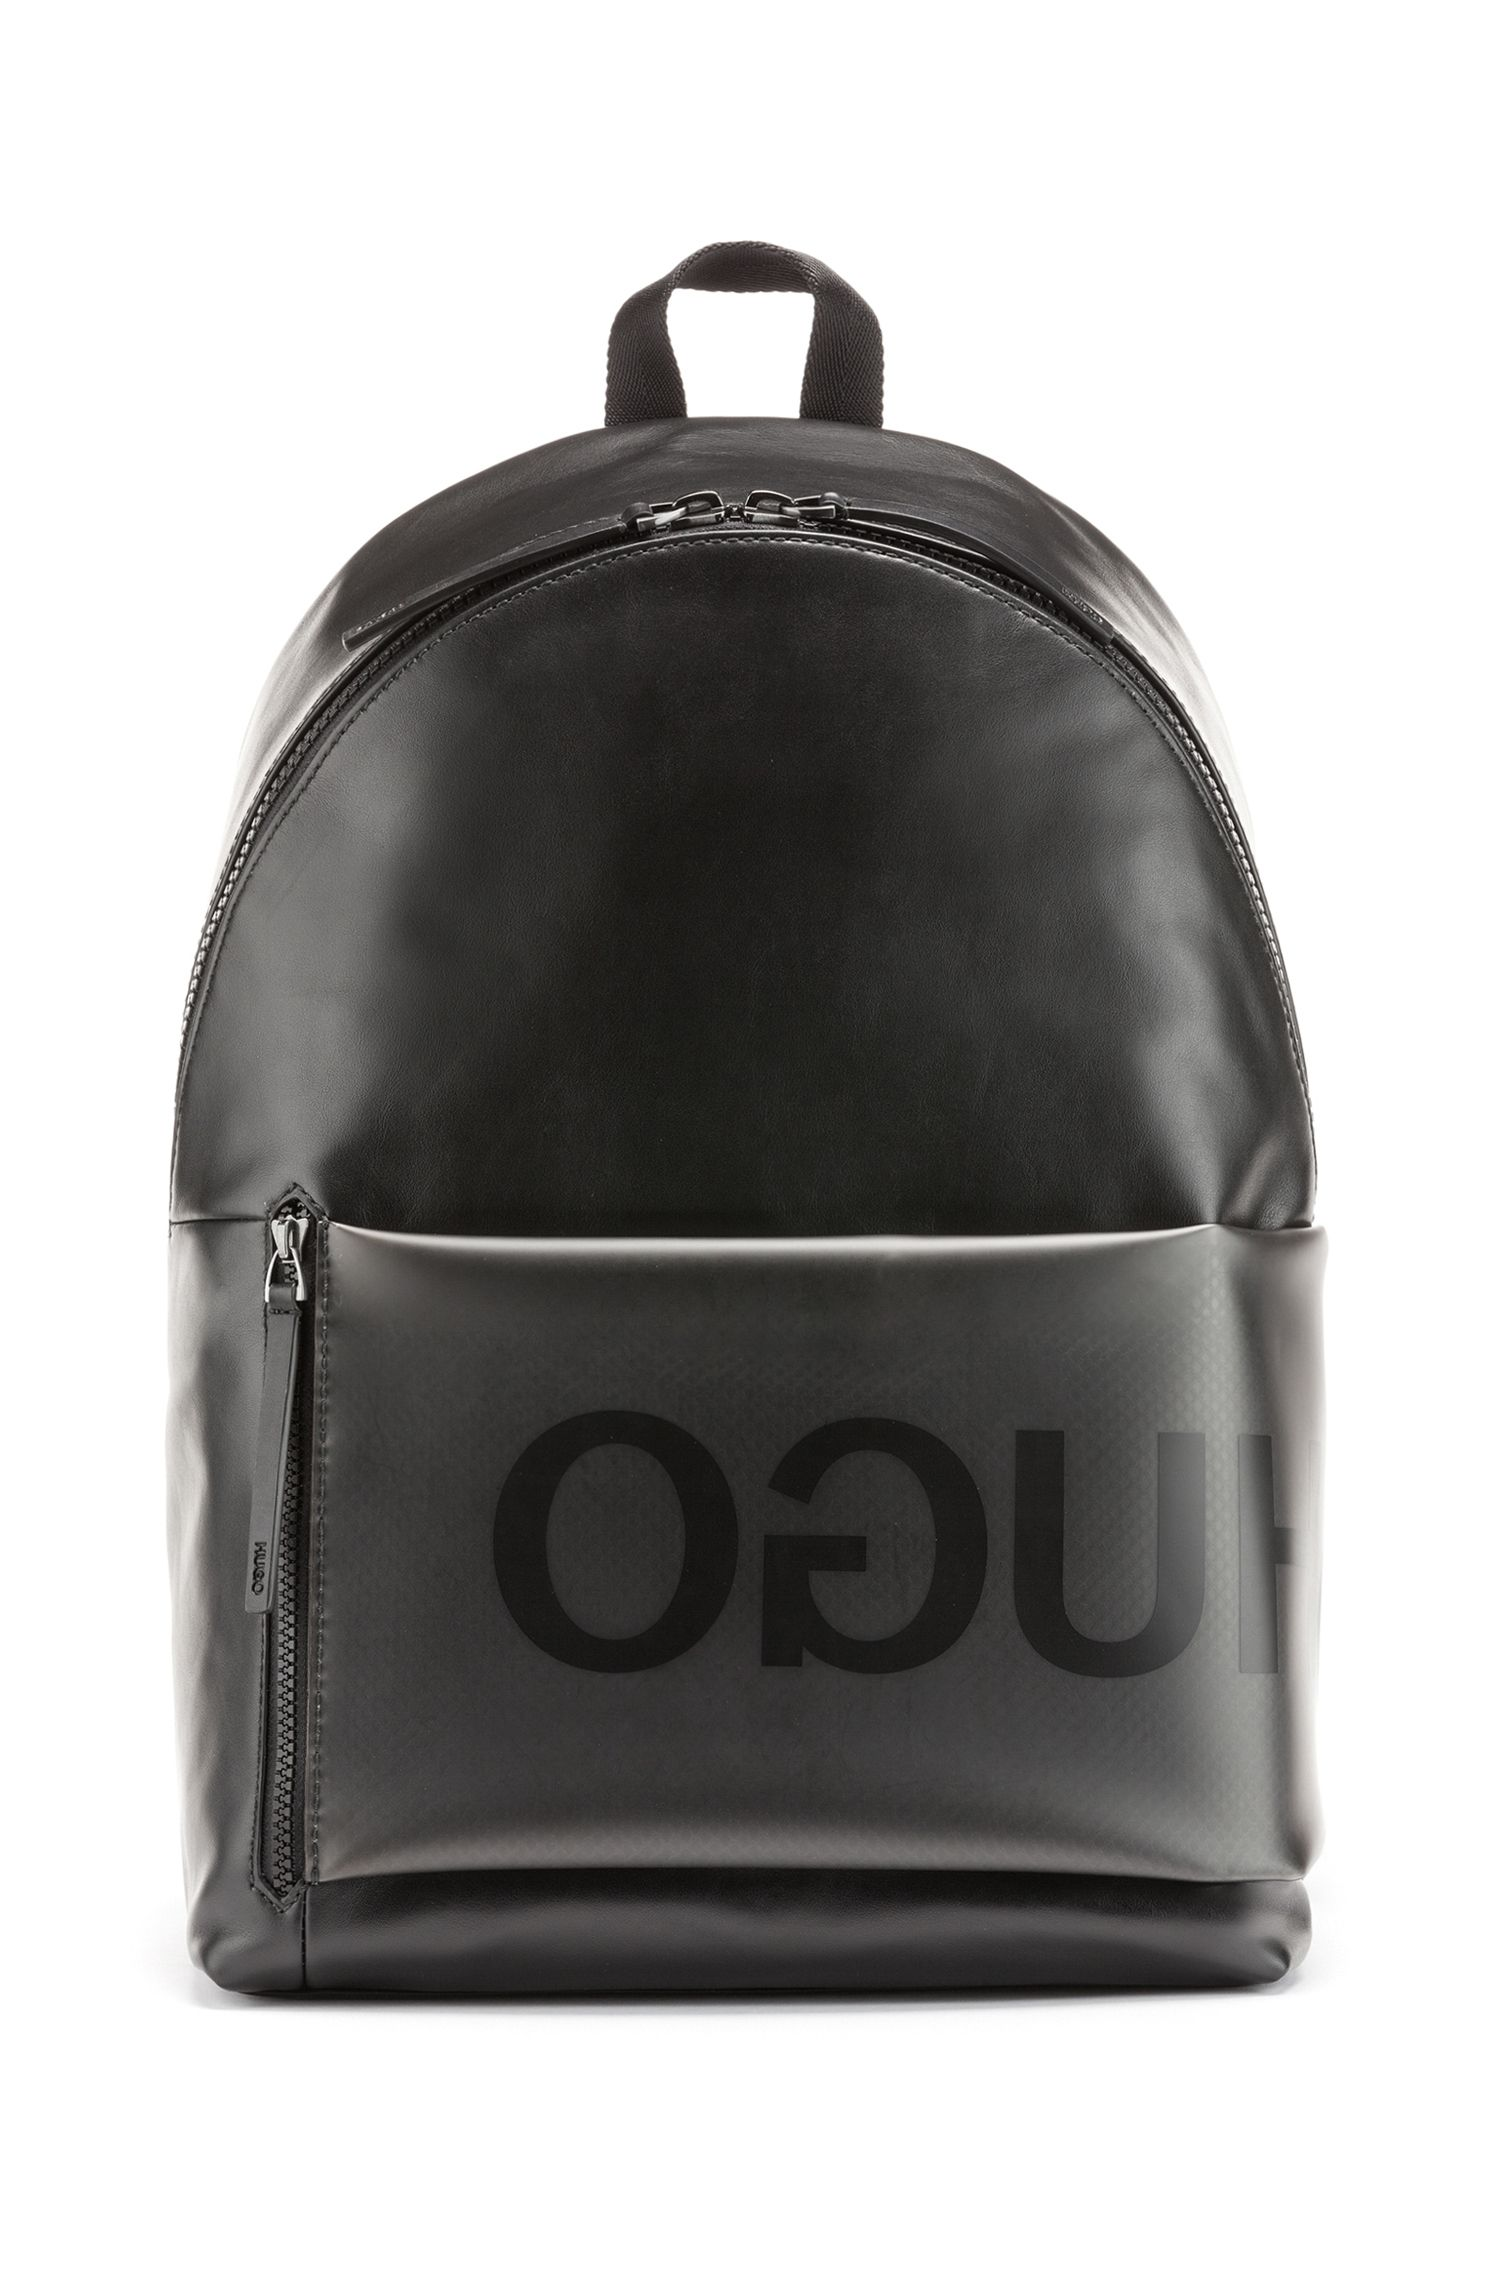 Italian-leather backpack with smoke-effect front pocket, Transparent